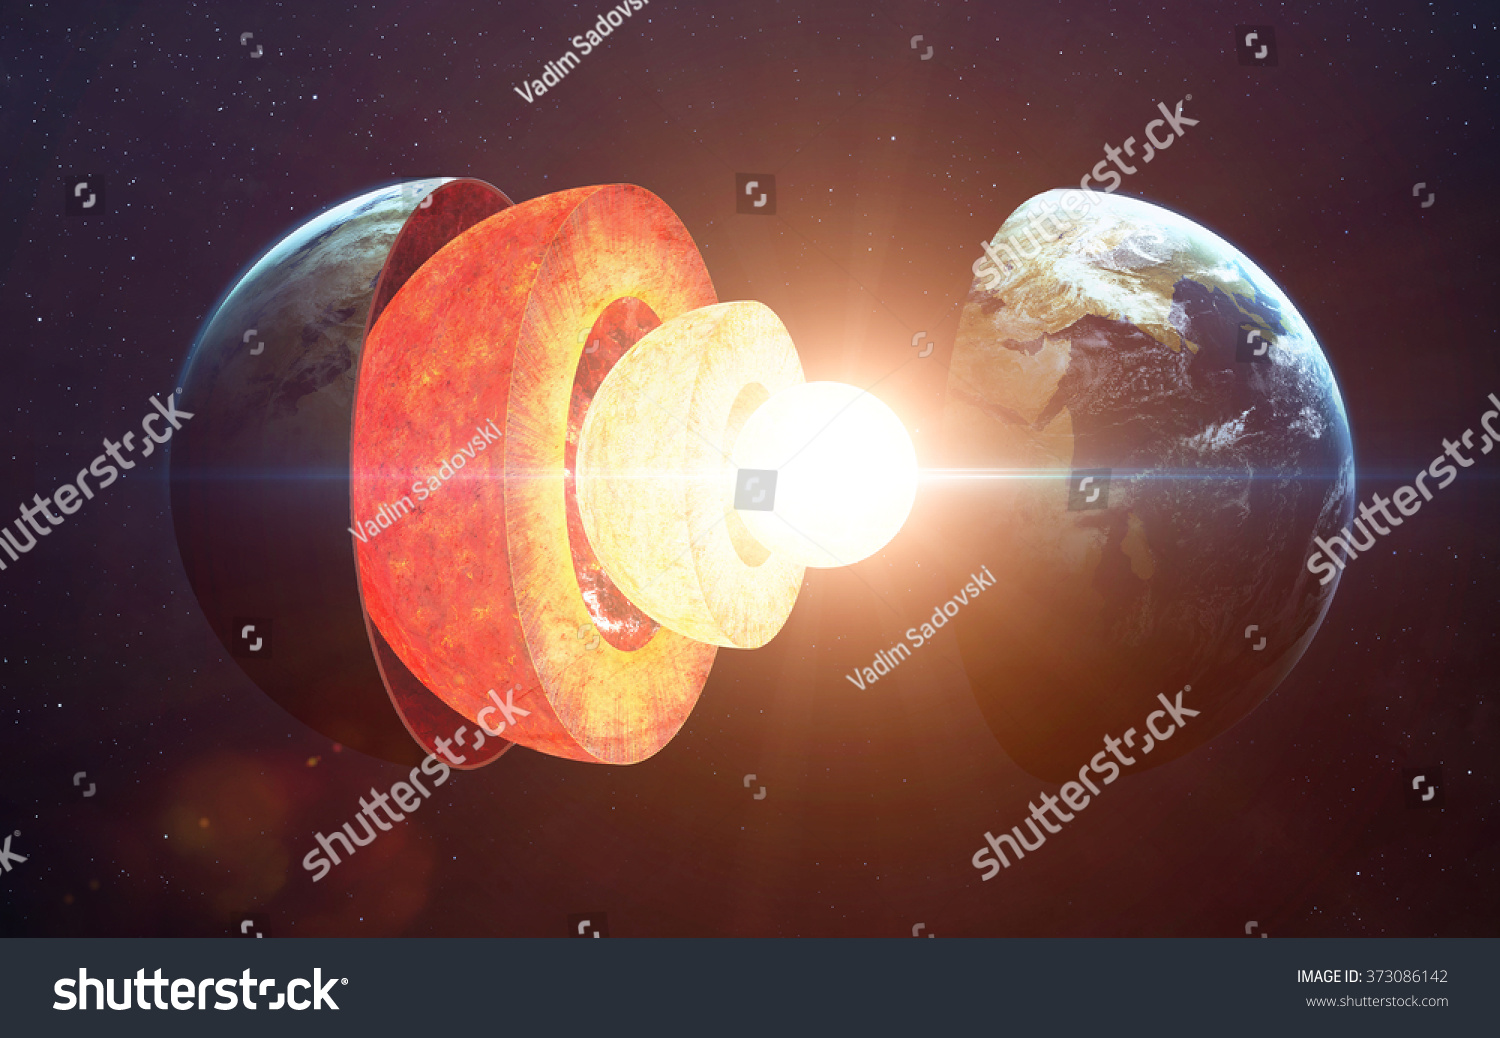 Earth core structure Elements of this image furnished by NASA